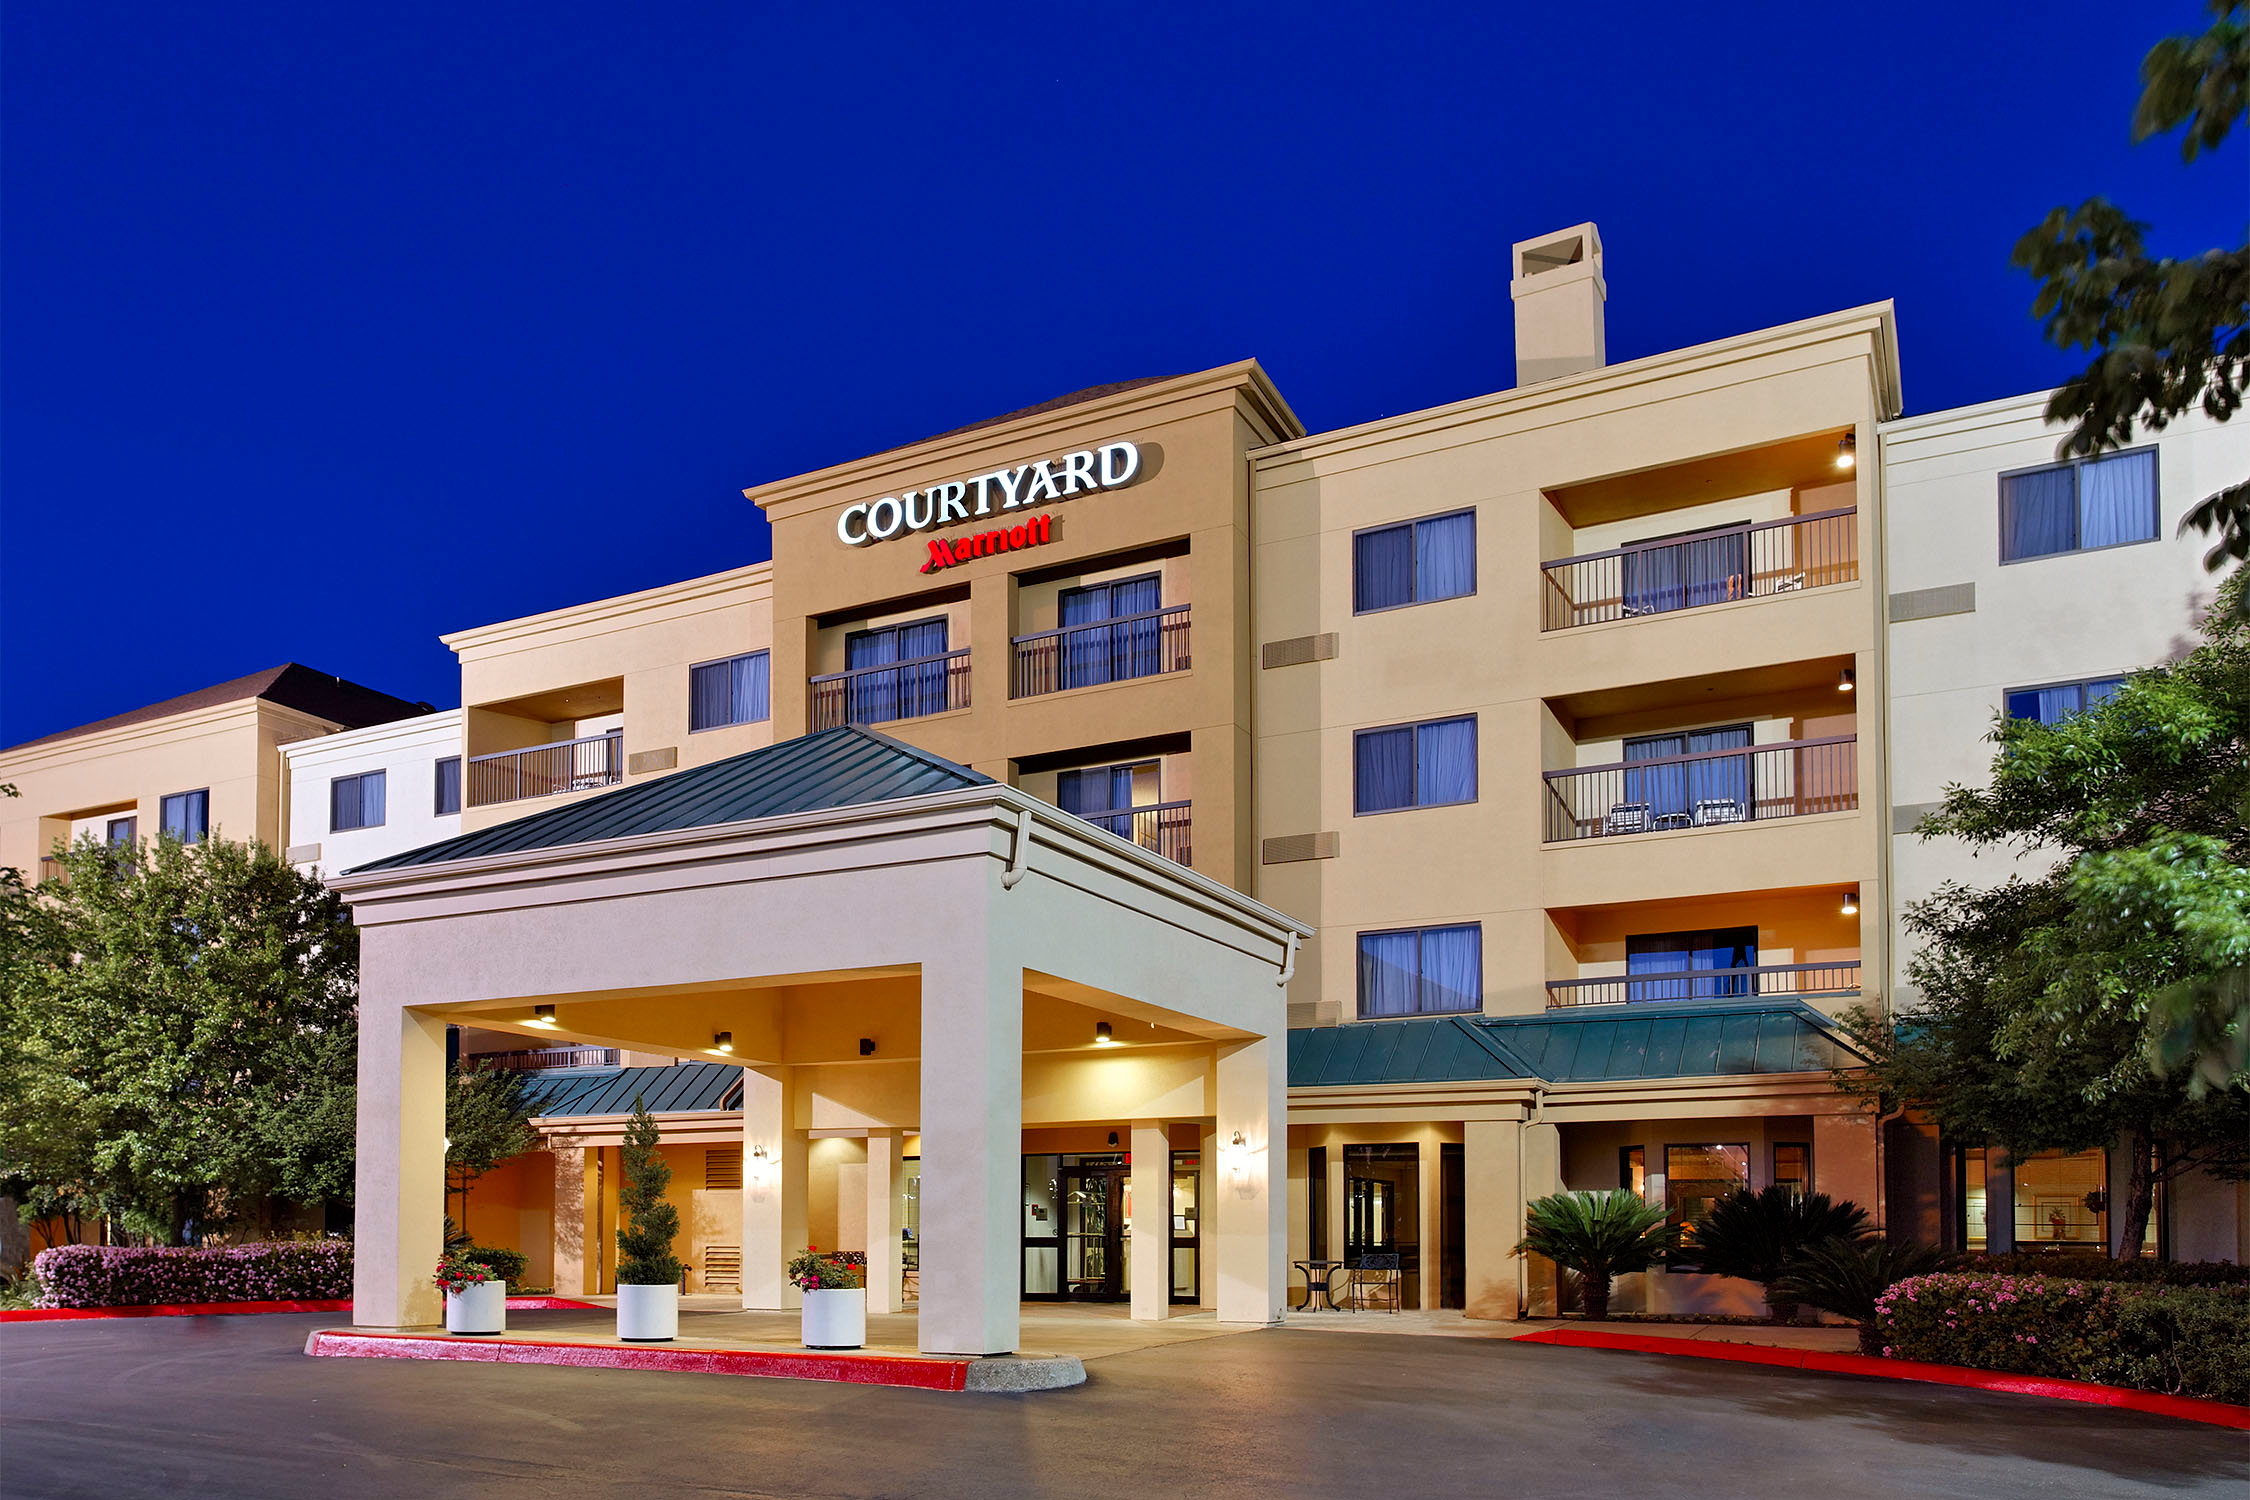 Courtyard by Marriott Austin South image 1